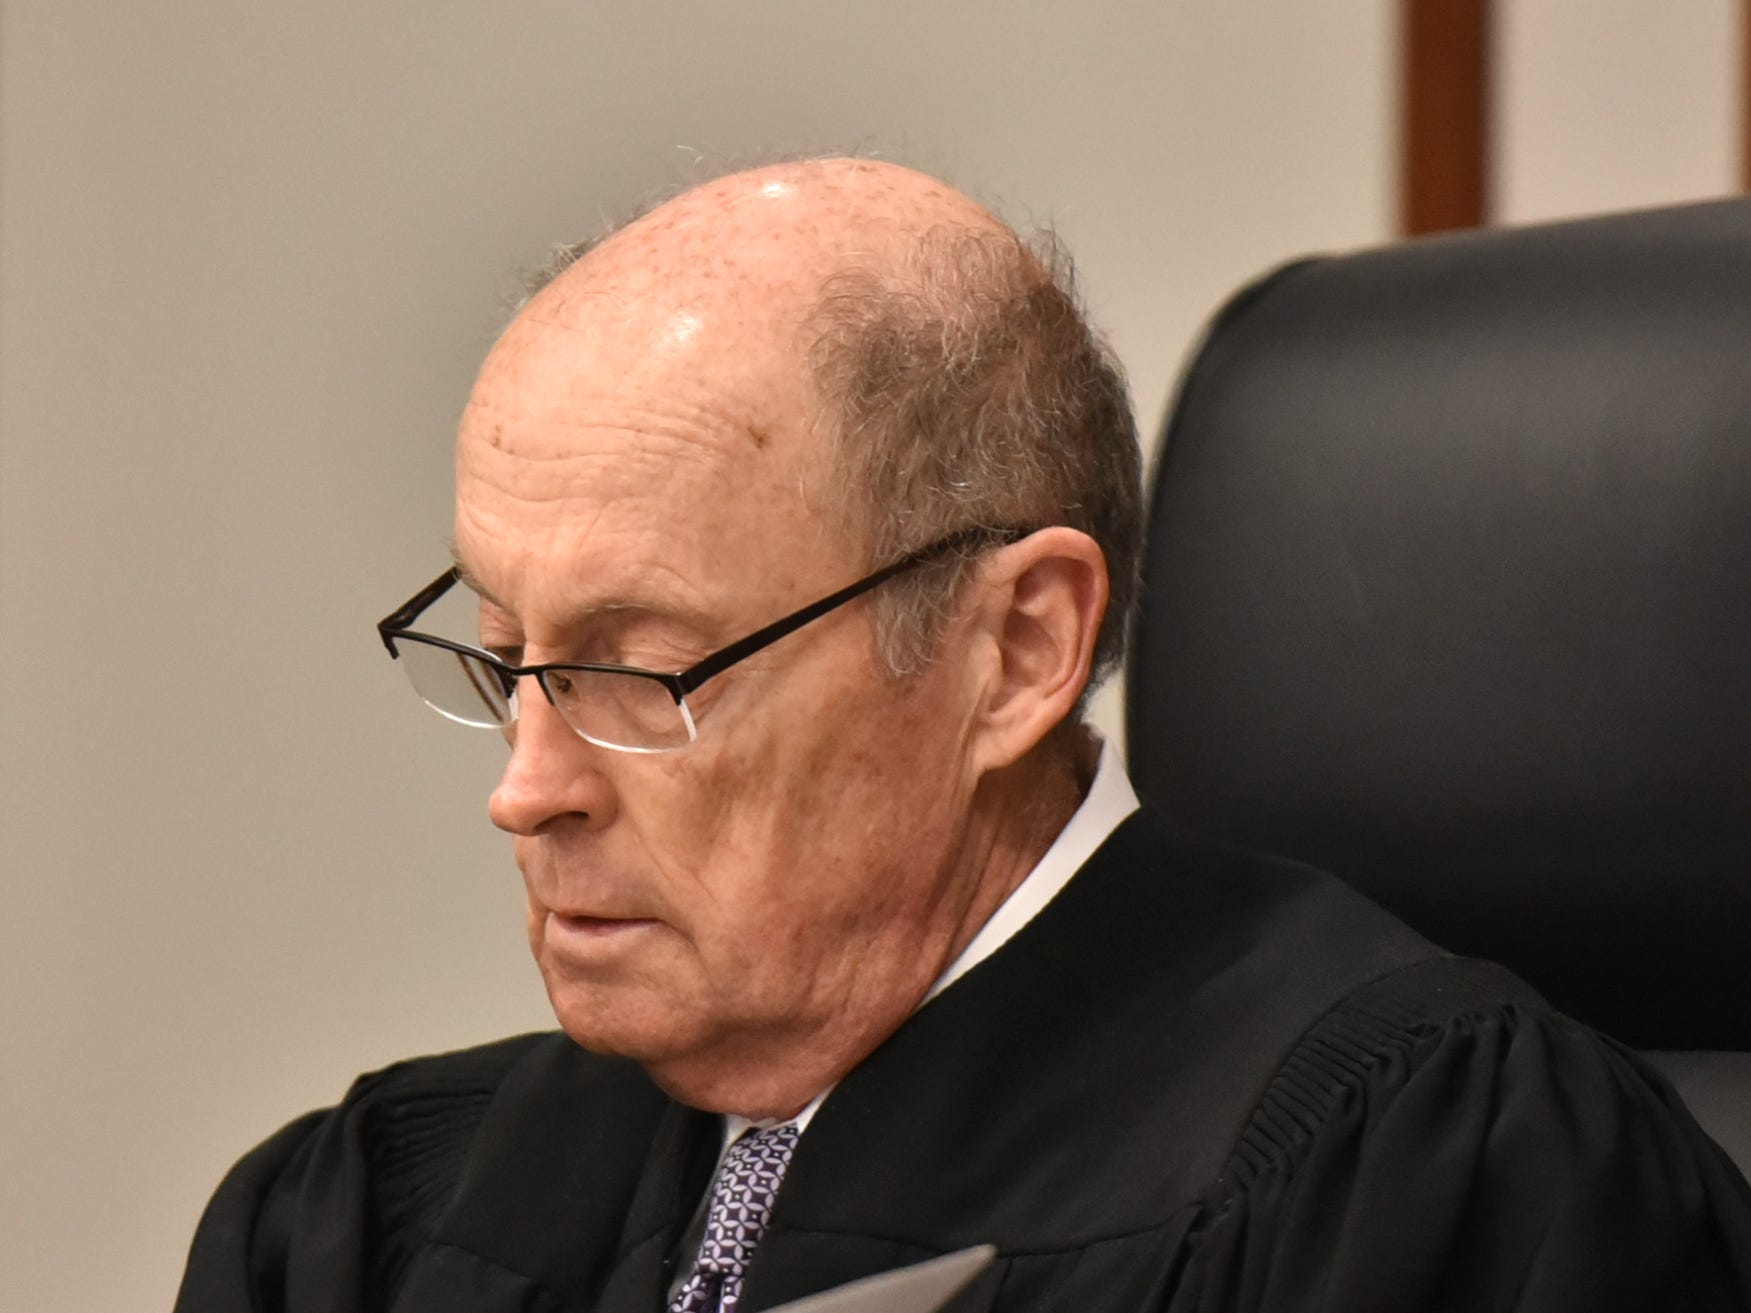 Judge James B. Brady presided over the video arraignment of Floyd Galloway on March 6 at Farmington Hill's 47th District Court.